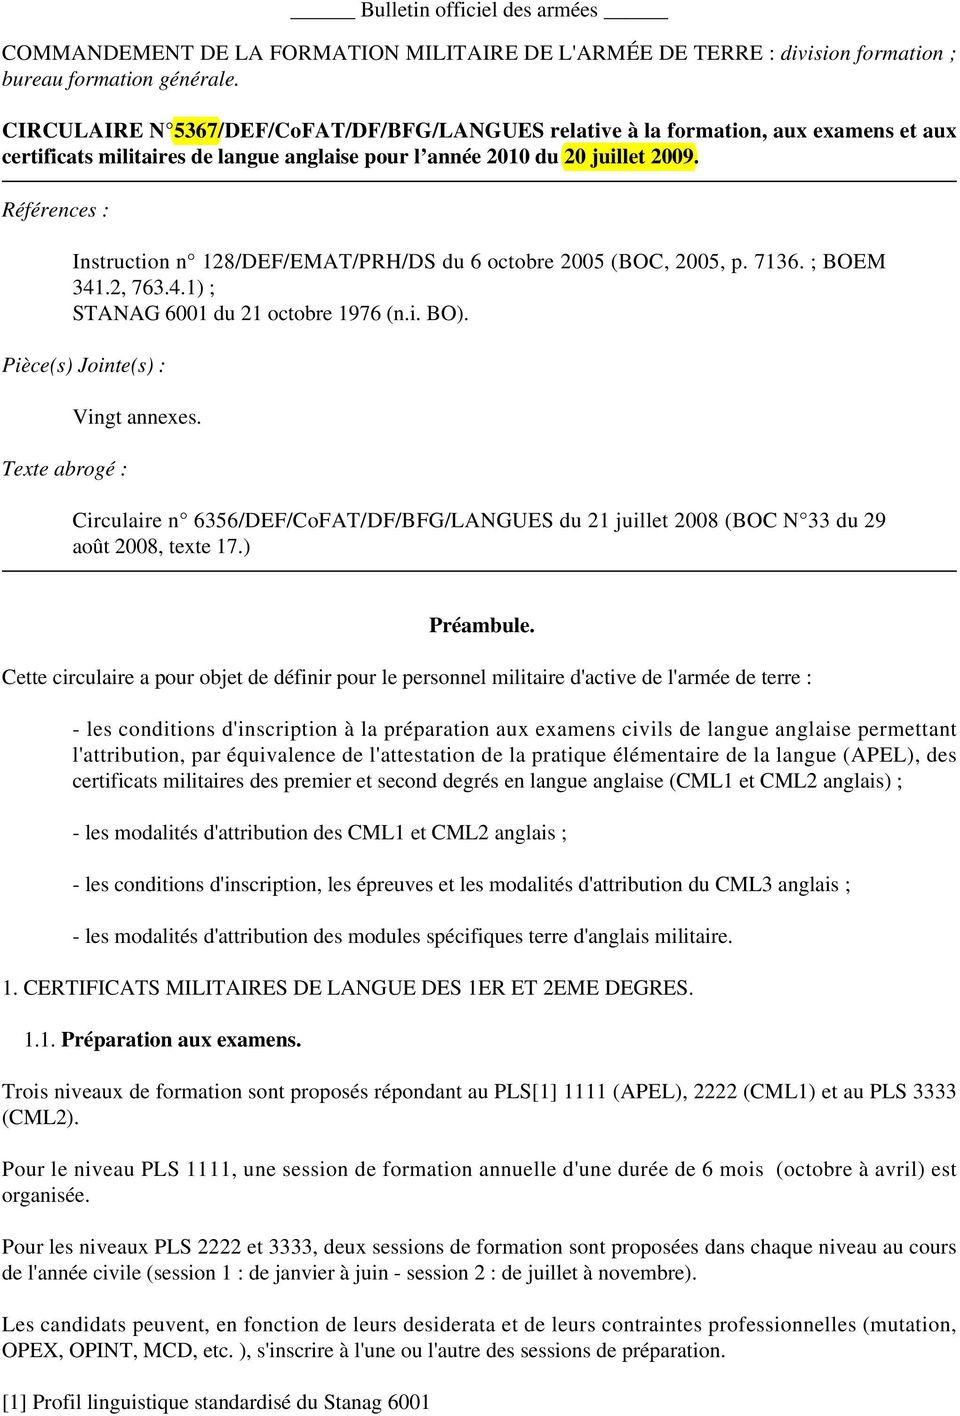 Références : Instruction n 128/DEF/EMAT/PRH/DS du 6 octobre 2005 (BOC, 2005, p. 7136. ; BOEM 341.2, 763.4.1) ; STANAG 6001 du 21 octobre 1976 (n.i. BO).